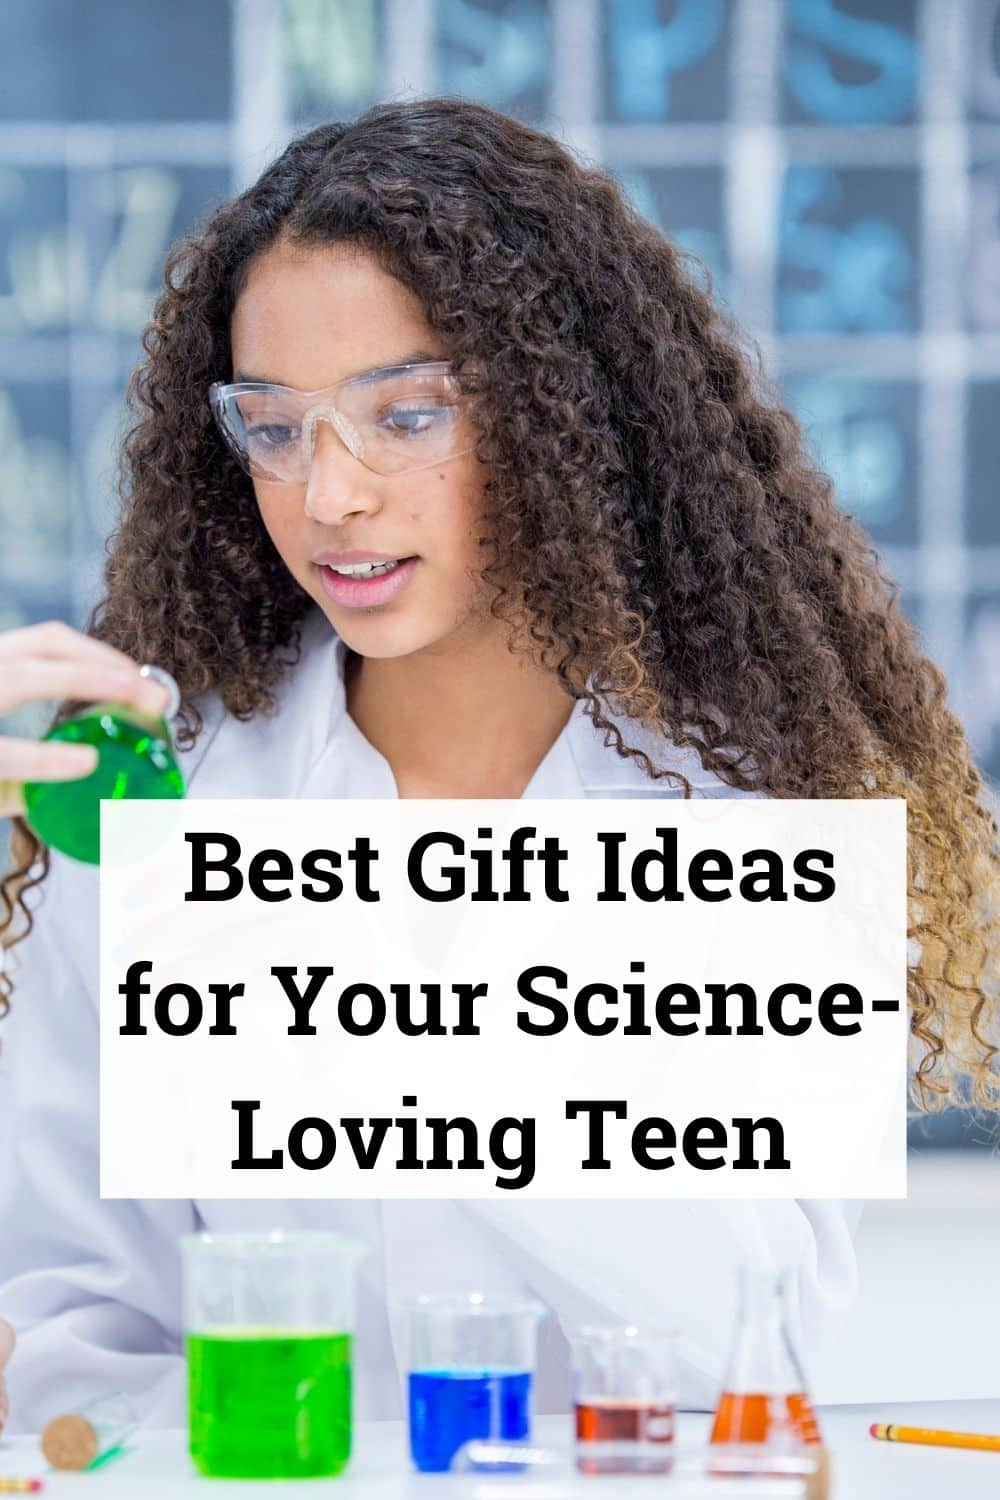 Best Gift Ideas for Your Science-Loving Teen